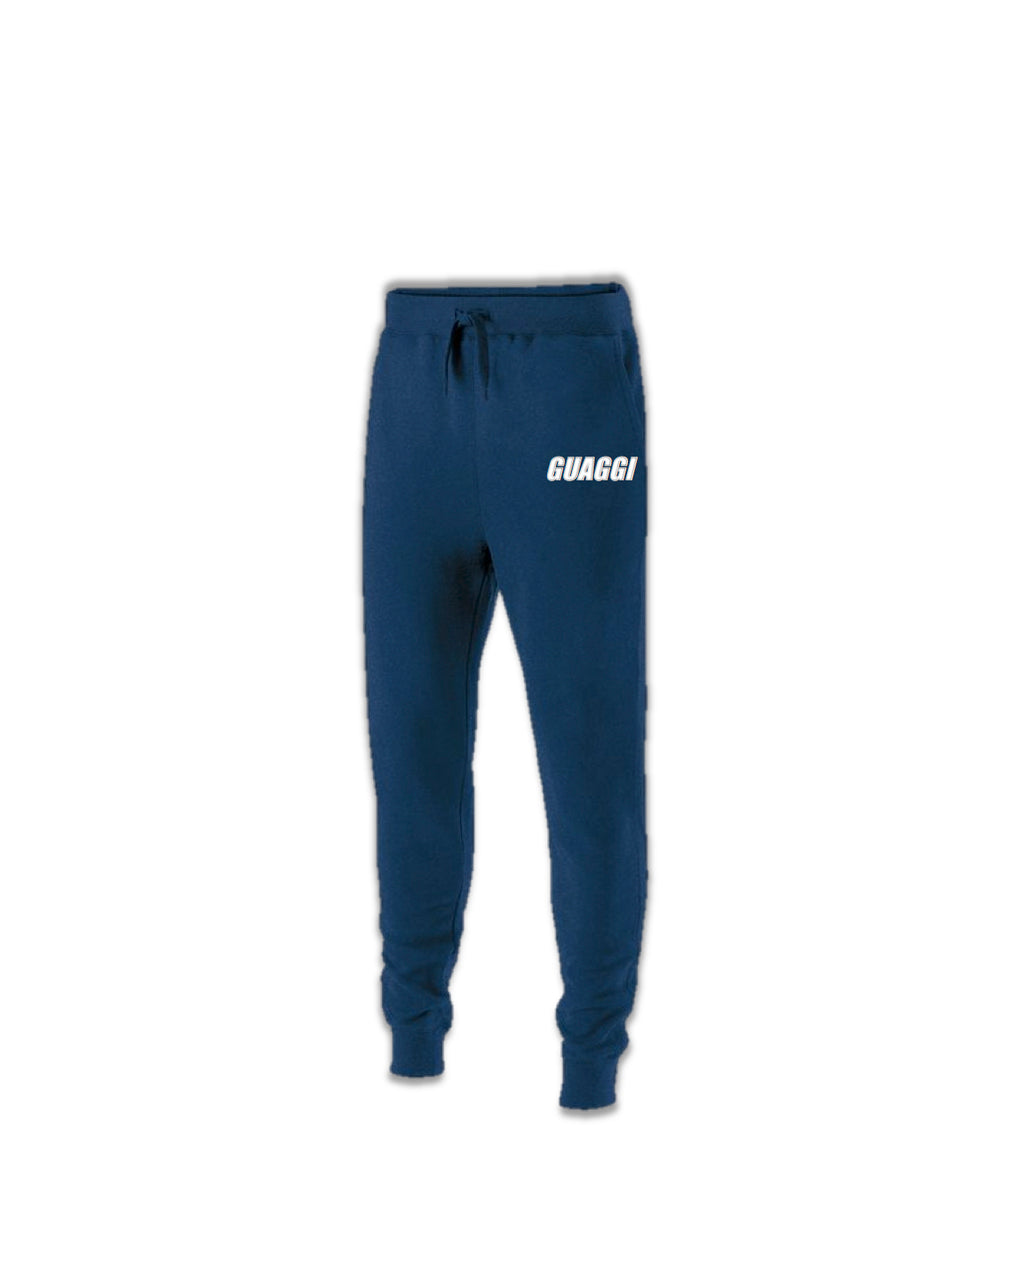 Motion Joggers - Navy (Choose Logo Color)